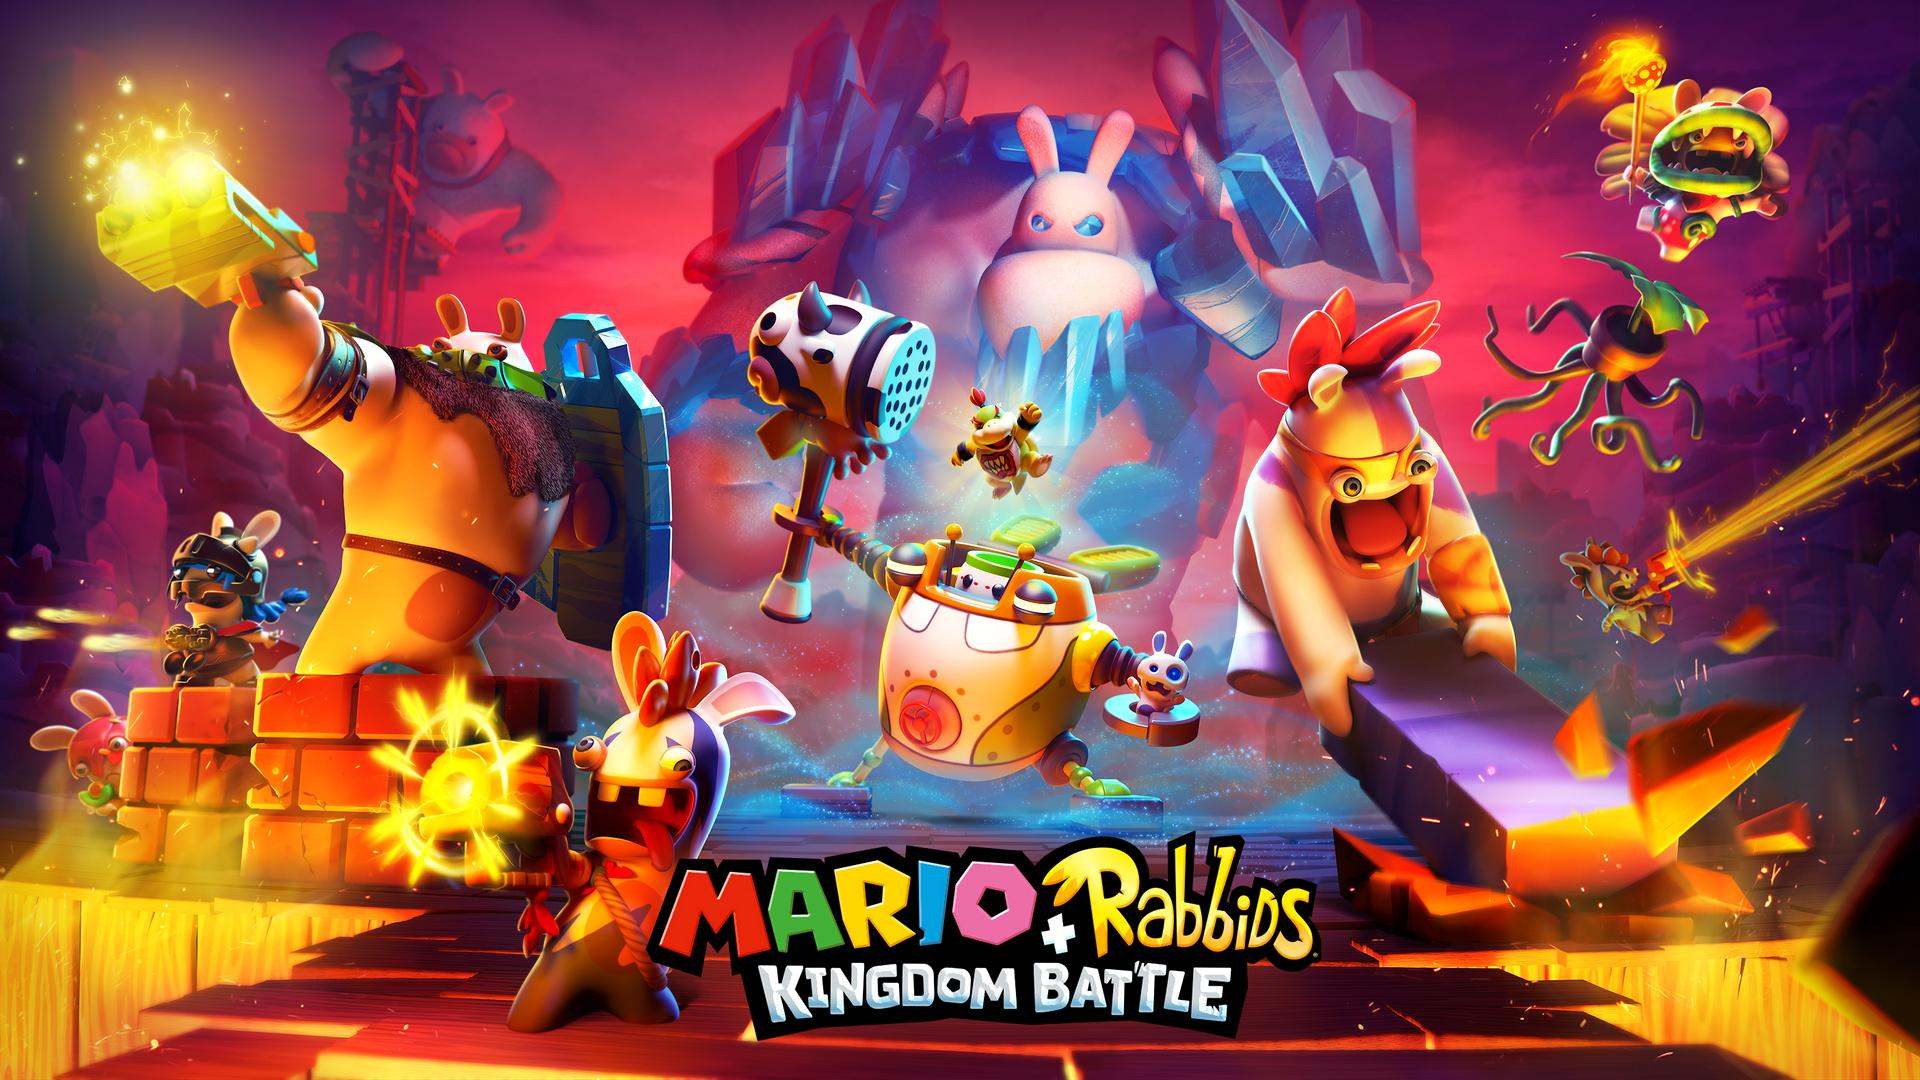 Mario + Rabbids Kingdom Battle per Nintendo Switch: i colorati mondi di gioco in nuove immagini